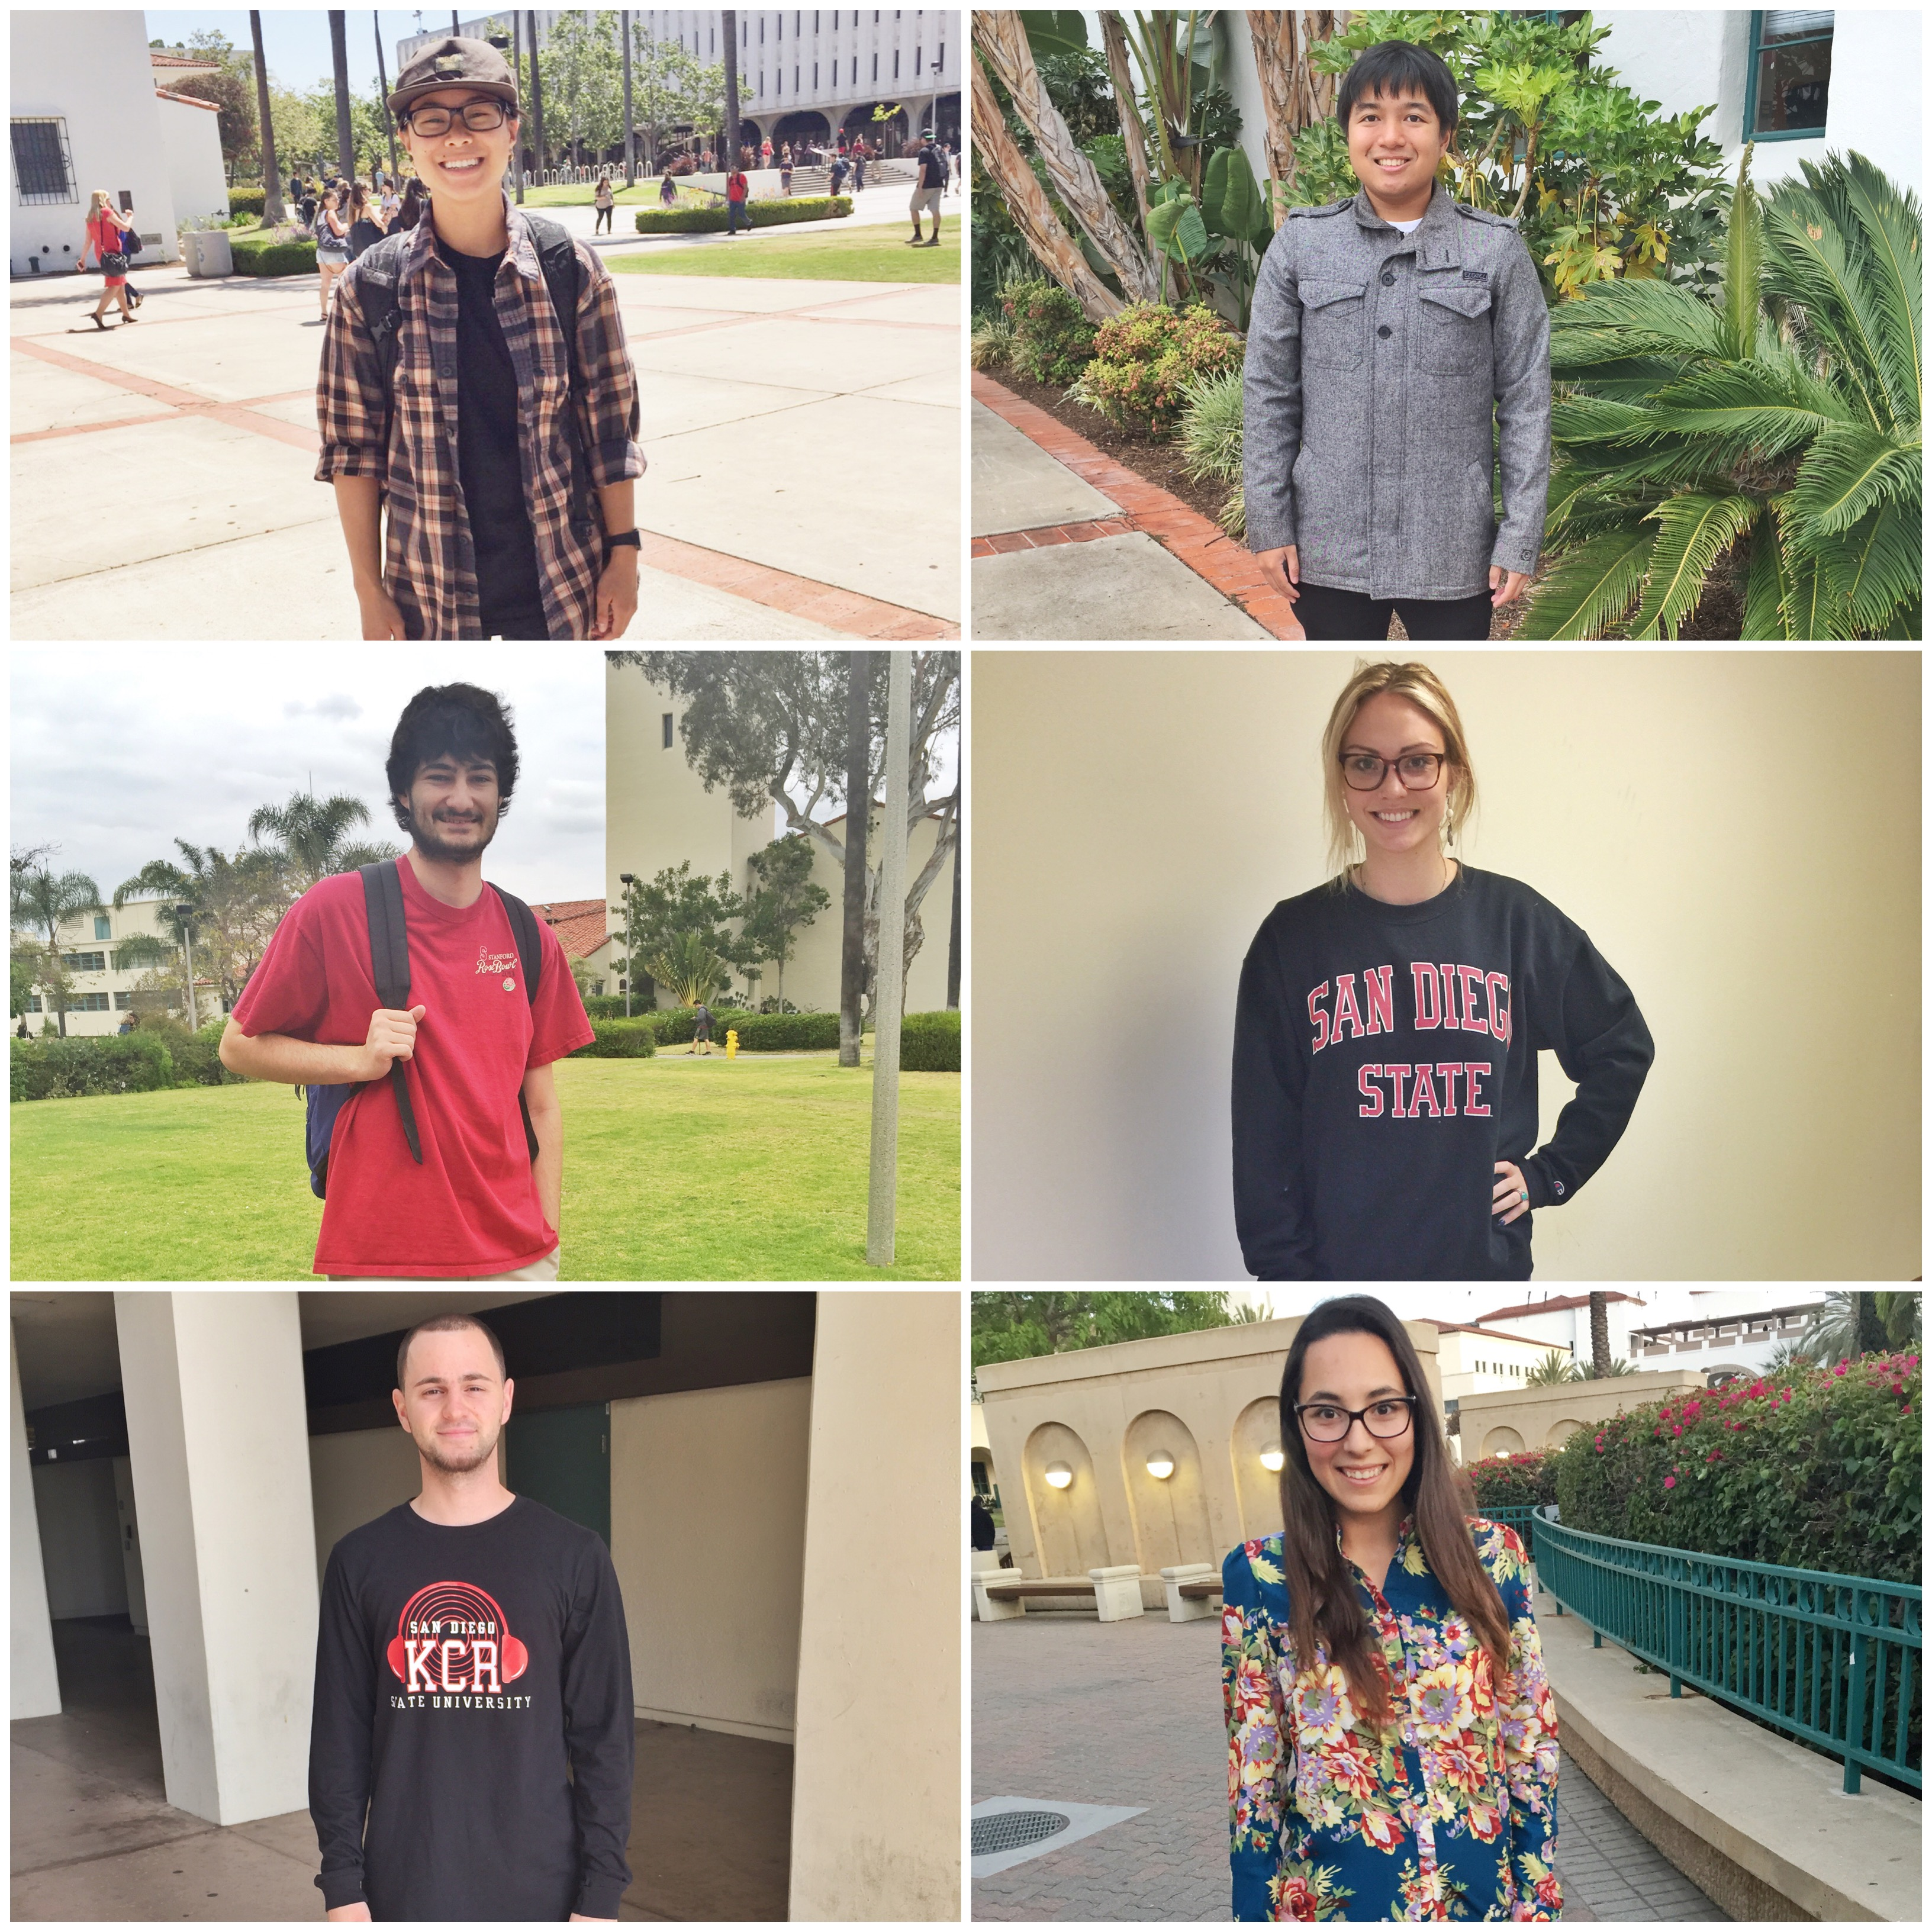 5ebdd635f85 Every San Diego State University student has their own style and it is  their way to express individuality. Students may have different backgrounds  and ...